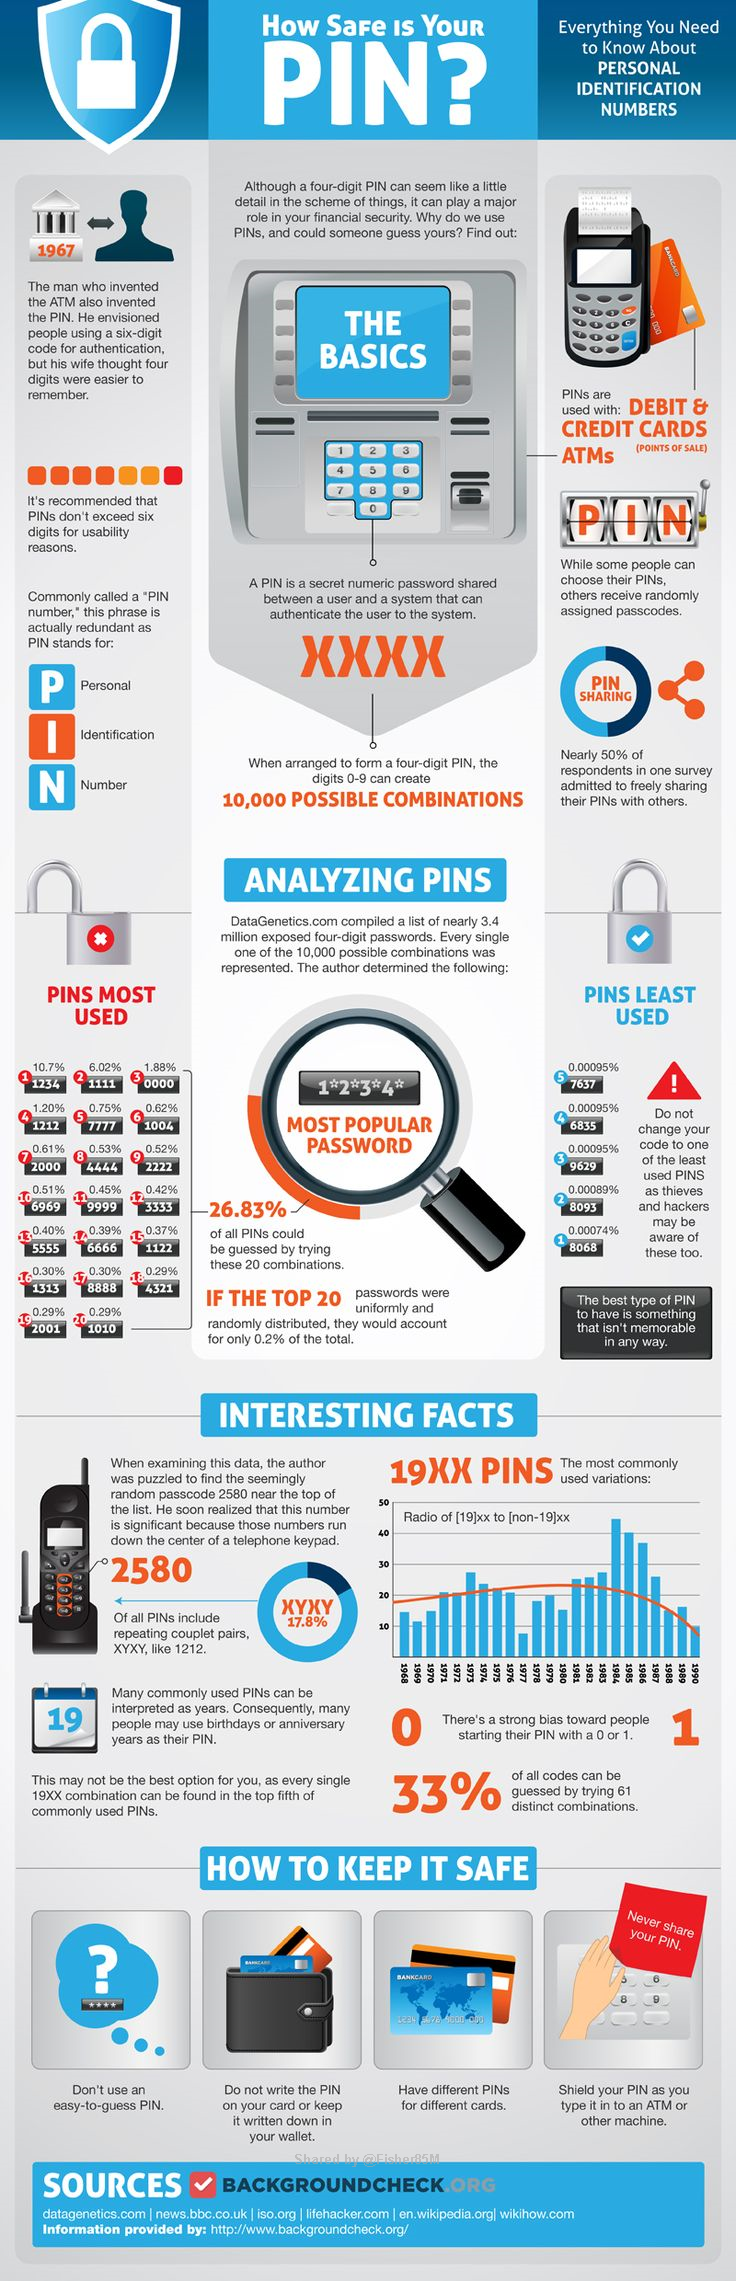 Pin by Michael Fisher on CyberSecurity Infographic